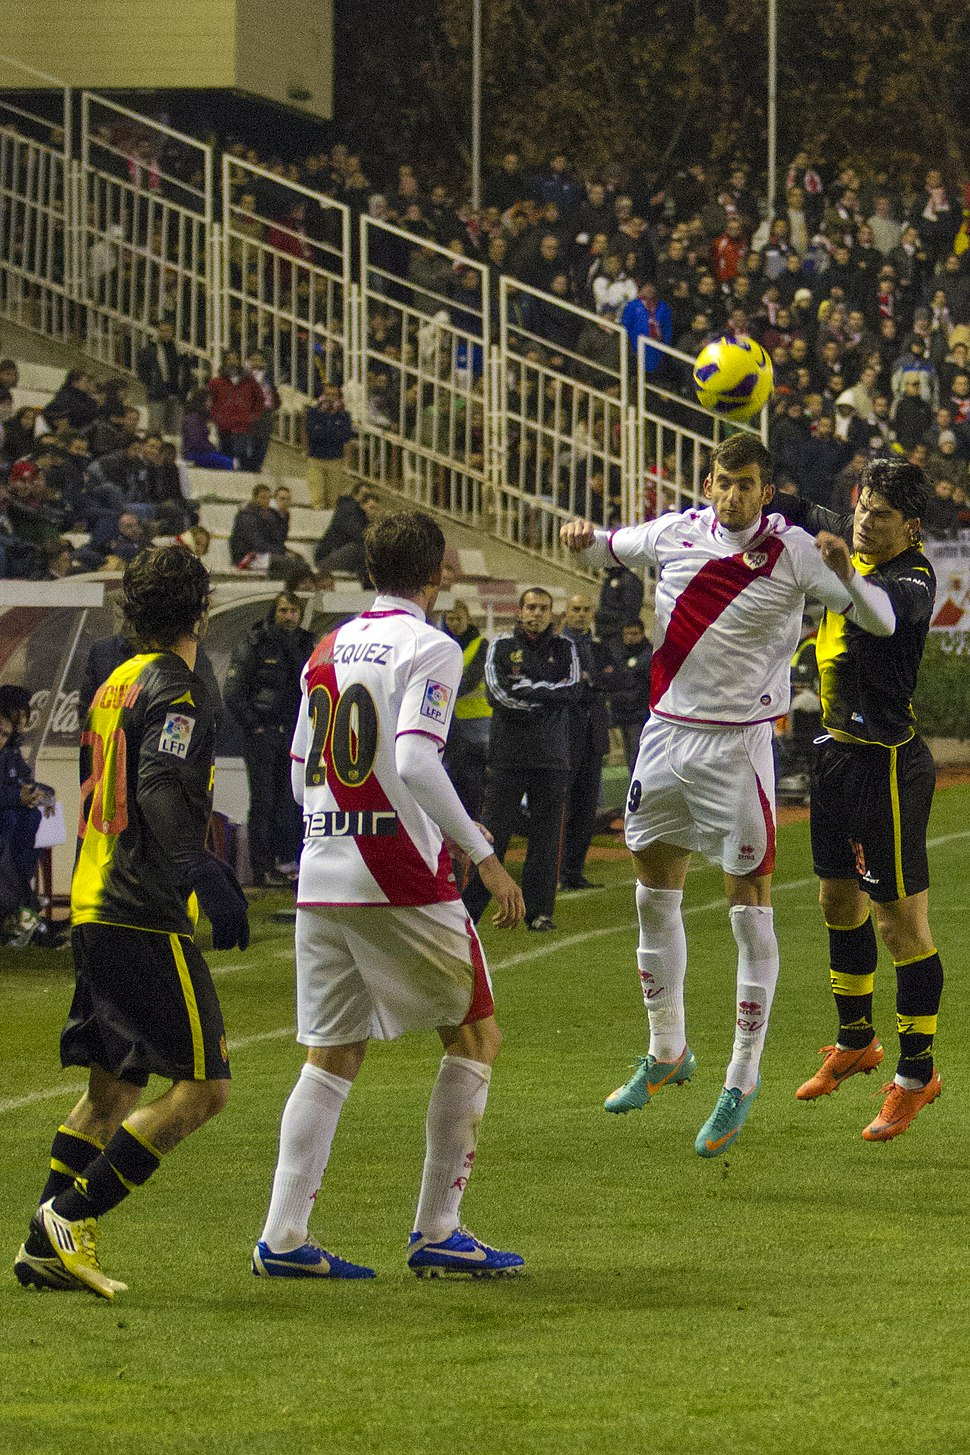 Rayo vallecano vs real zaragoza - Flickr - loren mzn (8)